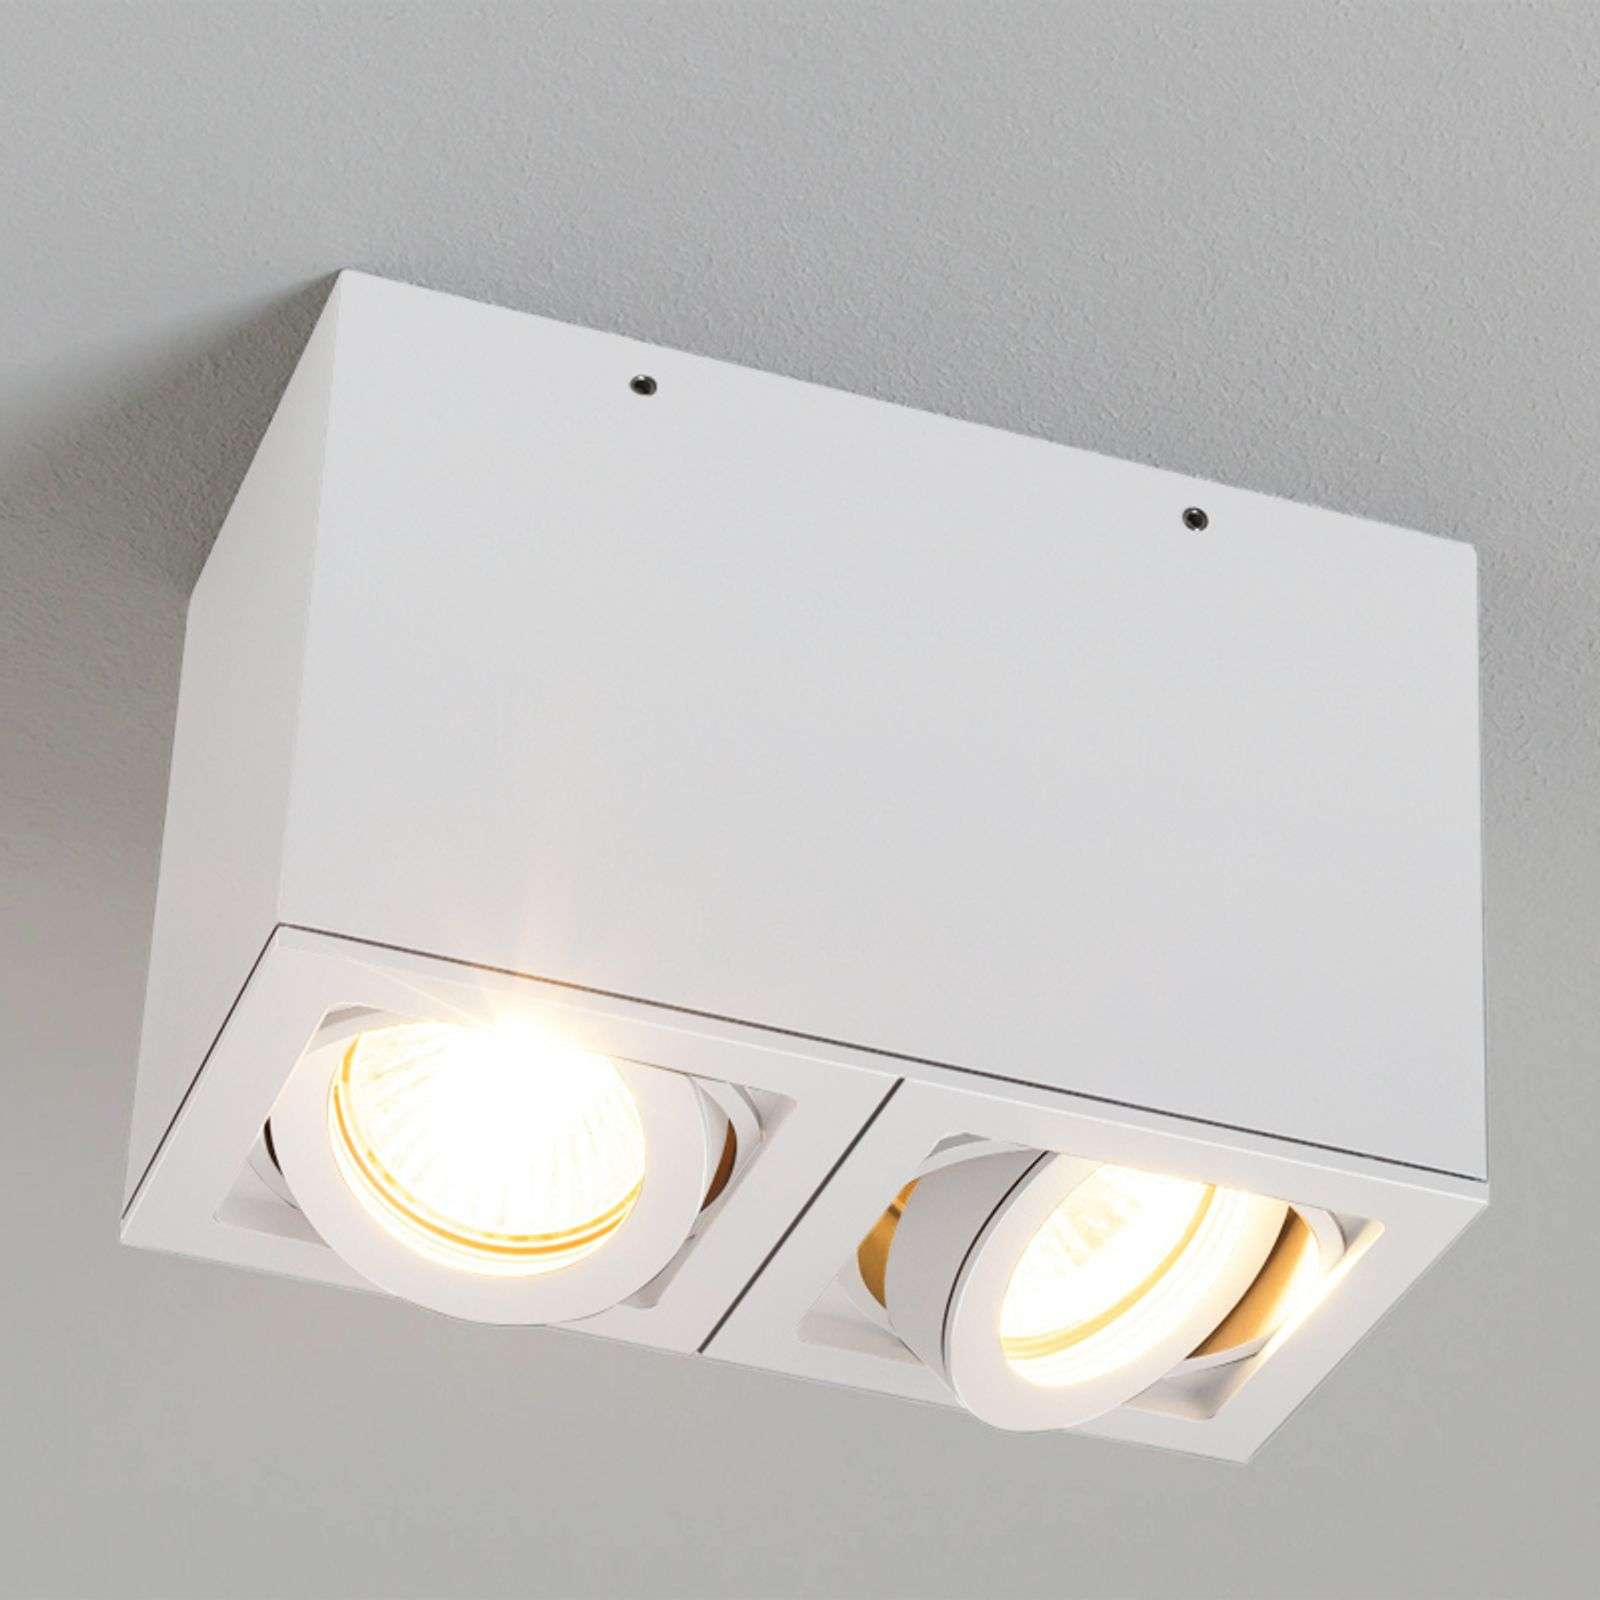 Faretto a soffitto a 2 luci LIGHT BOX 2 bianco